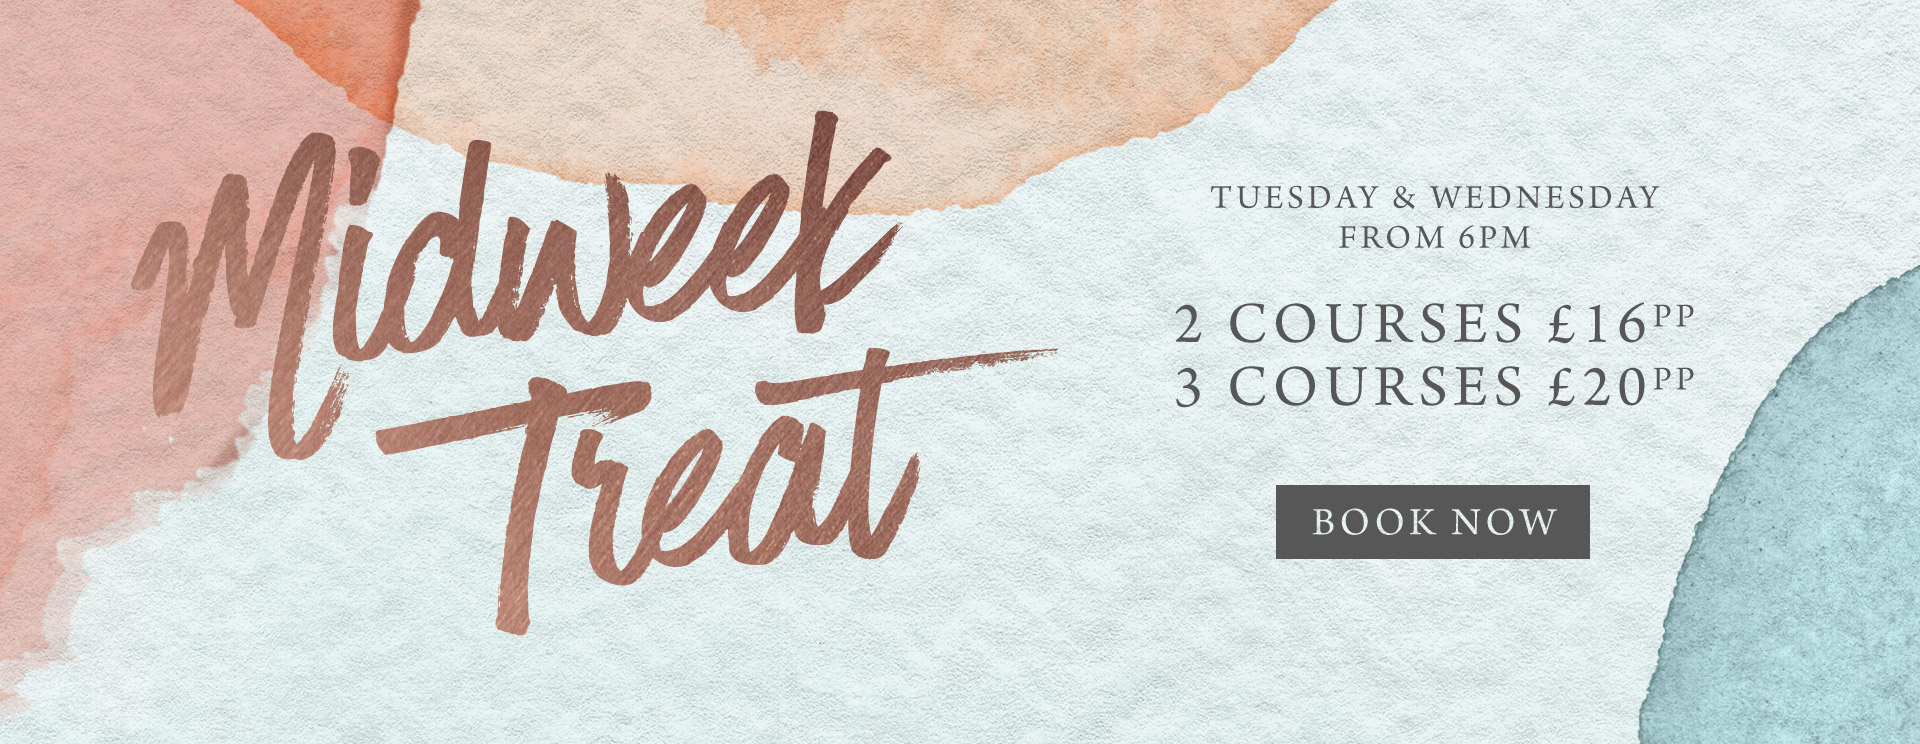 Midweek treat at The Bell Inn - Book now